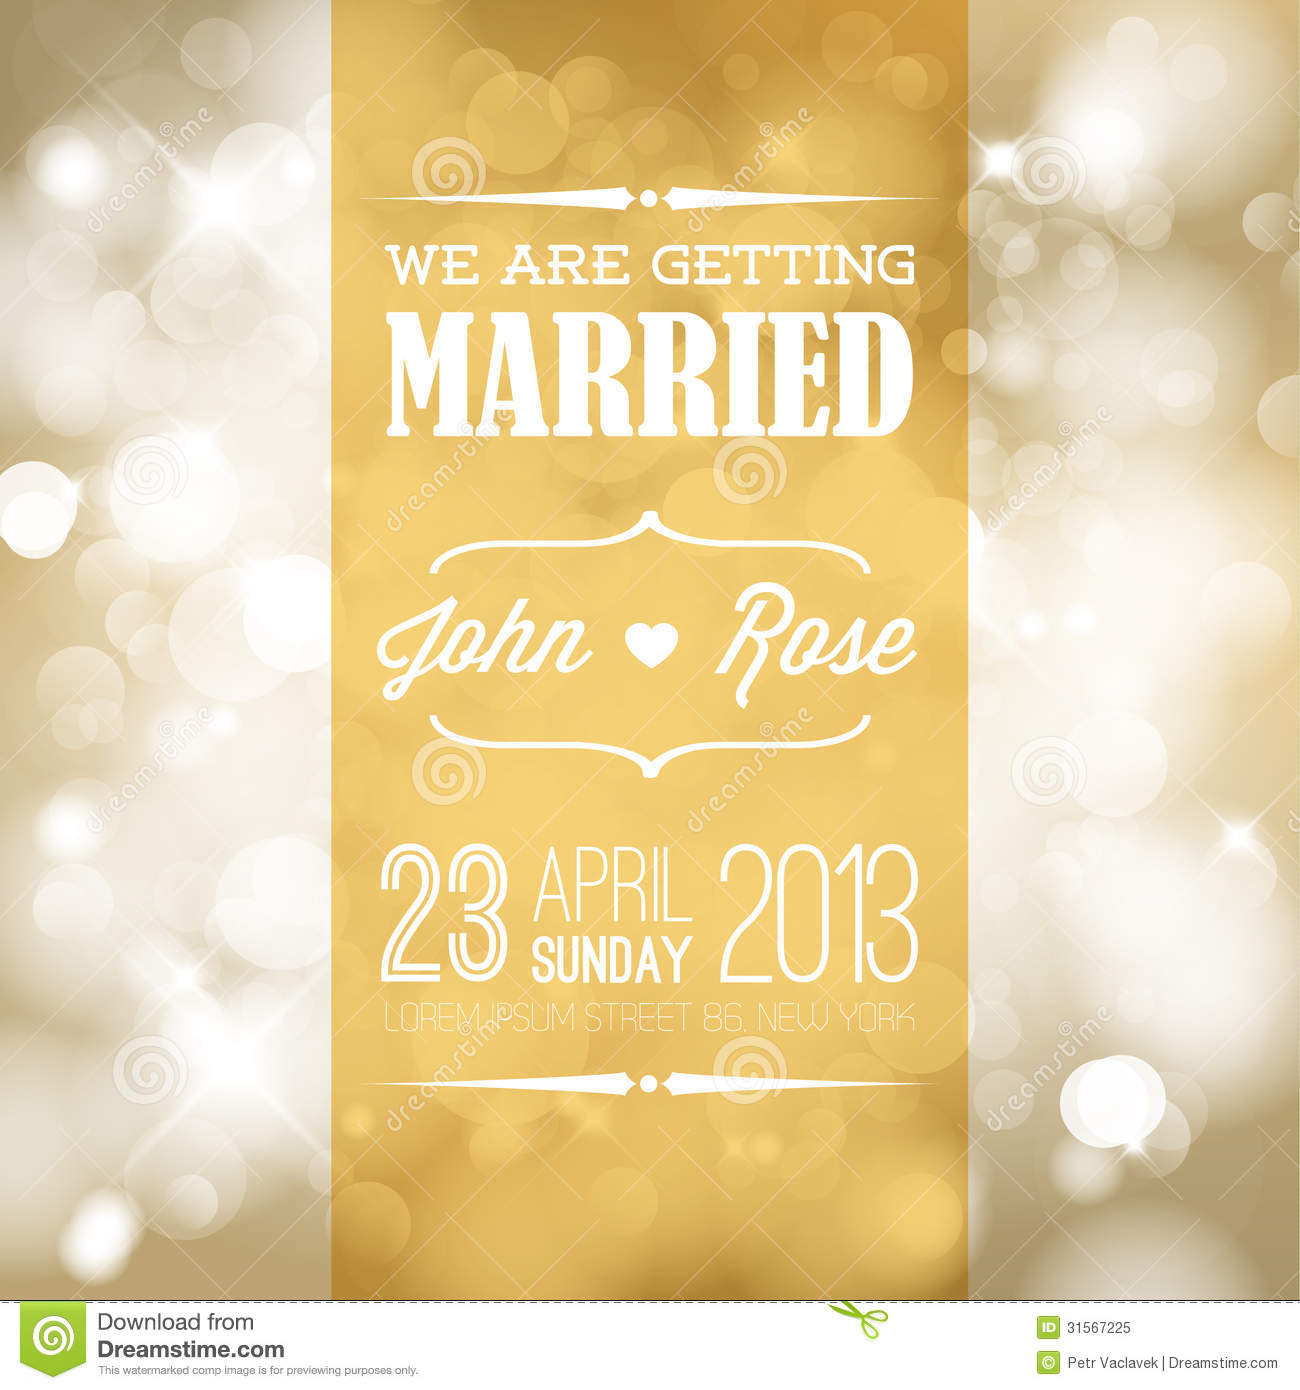 Wedding Invitations Prices with nice invitations example